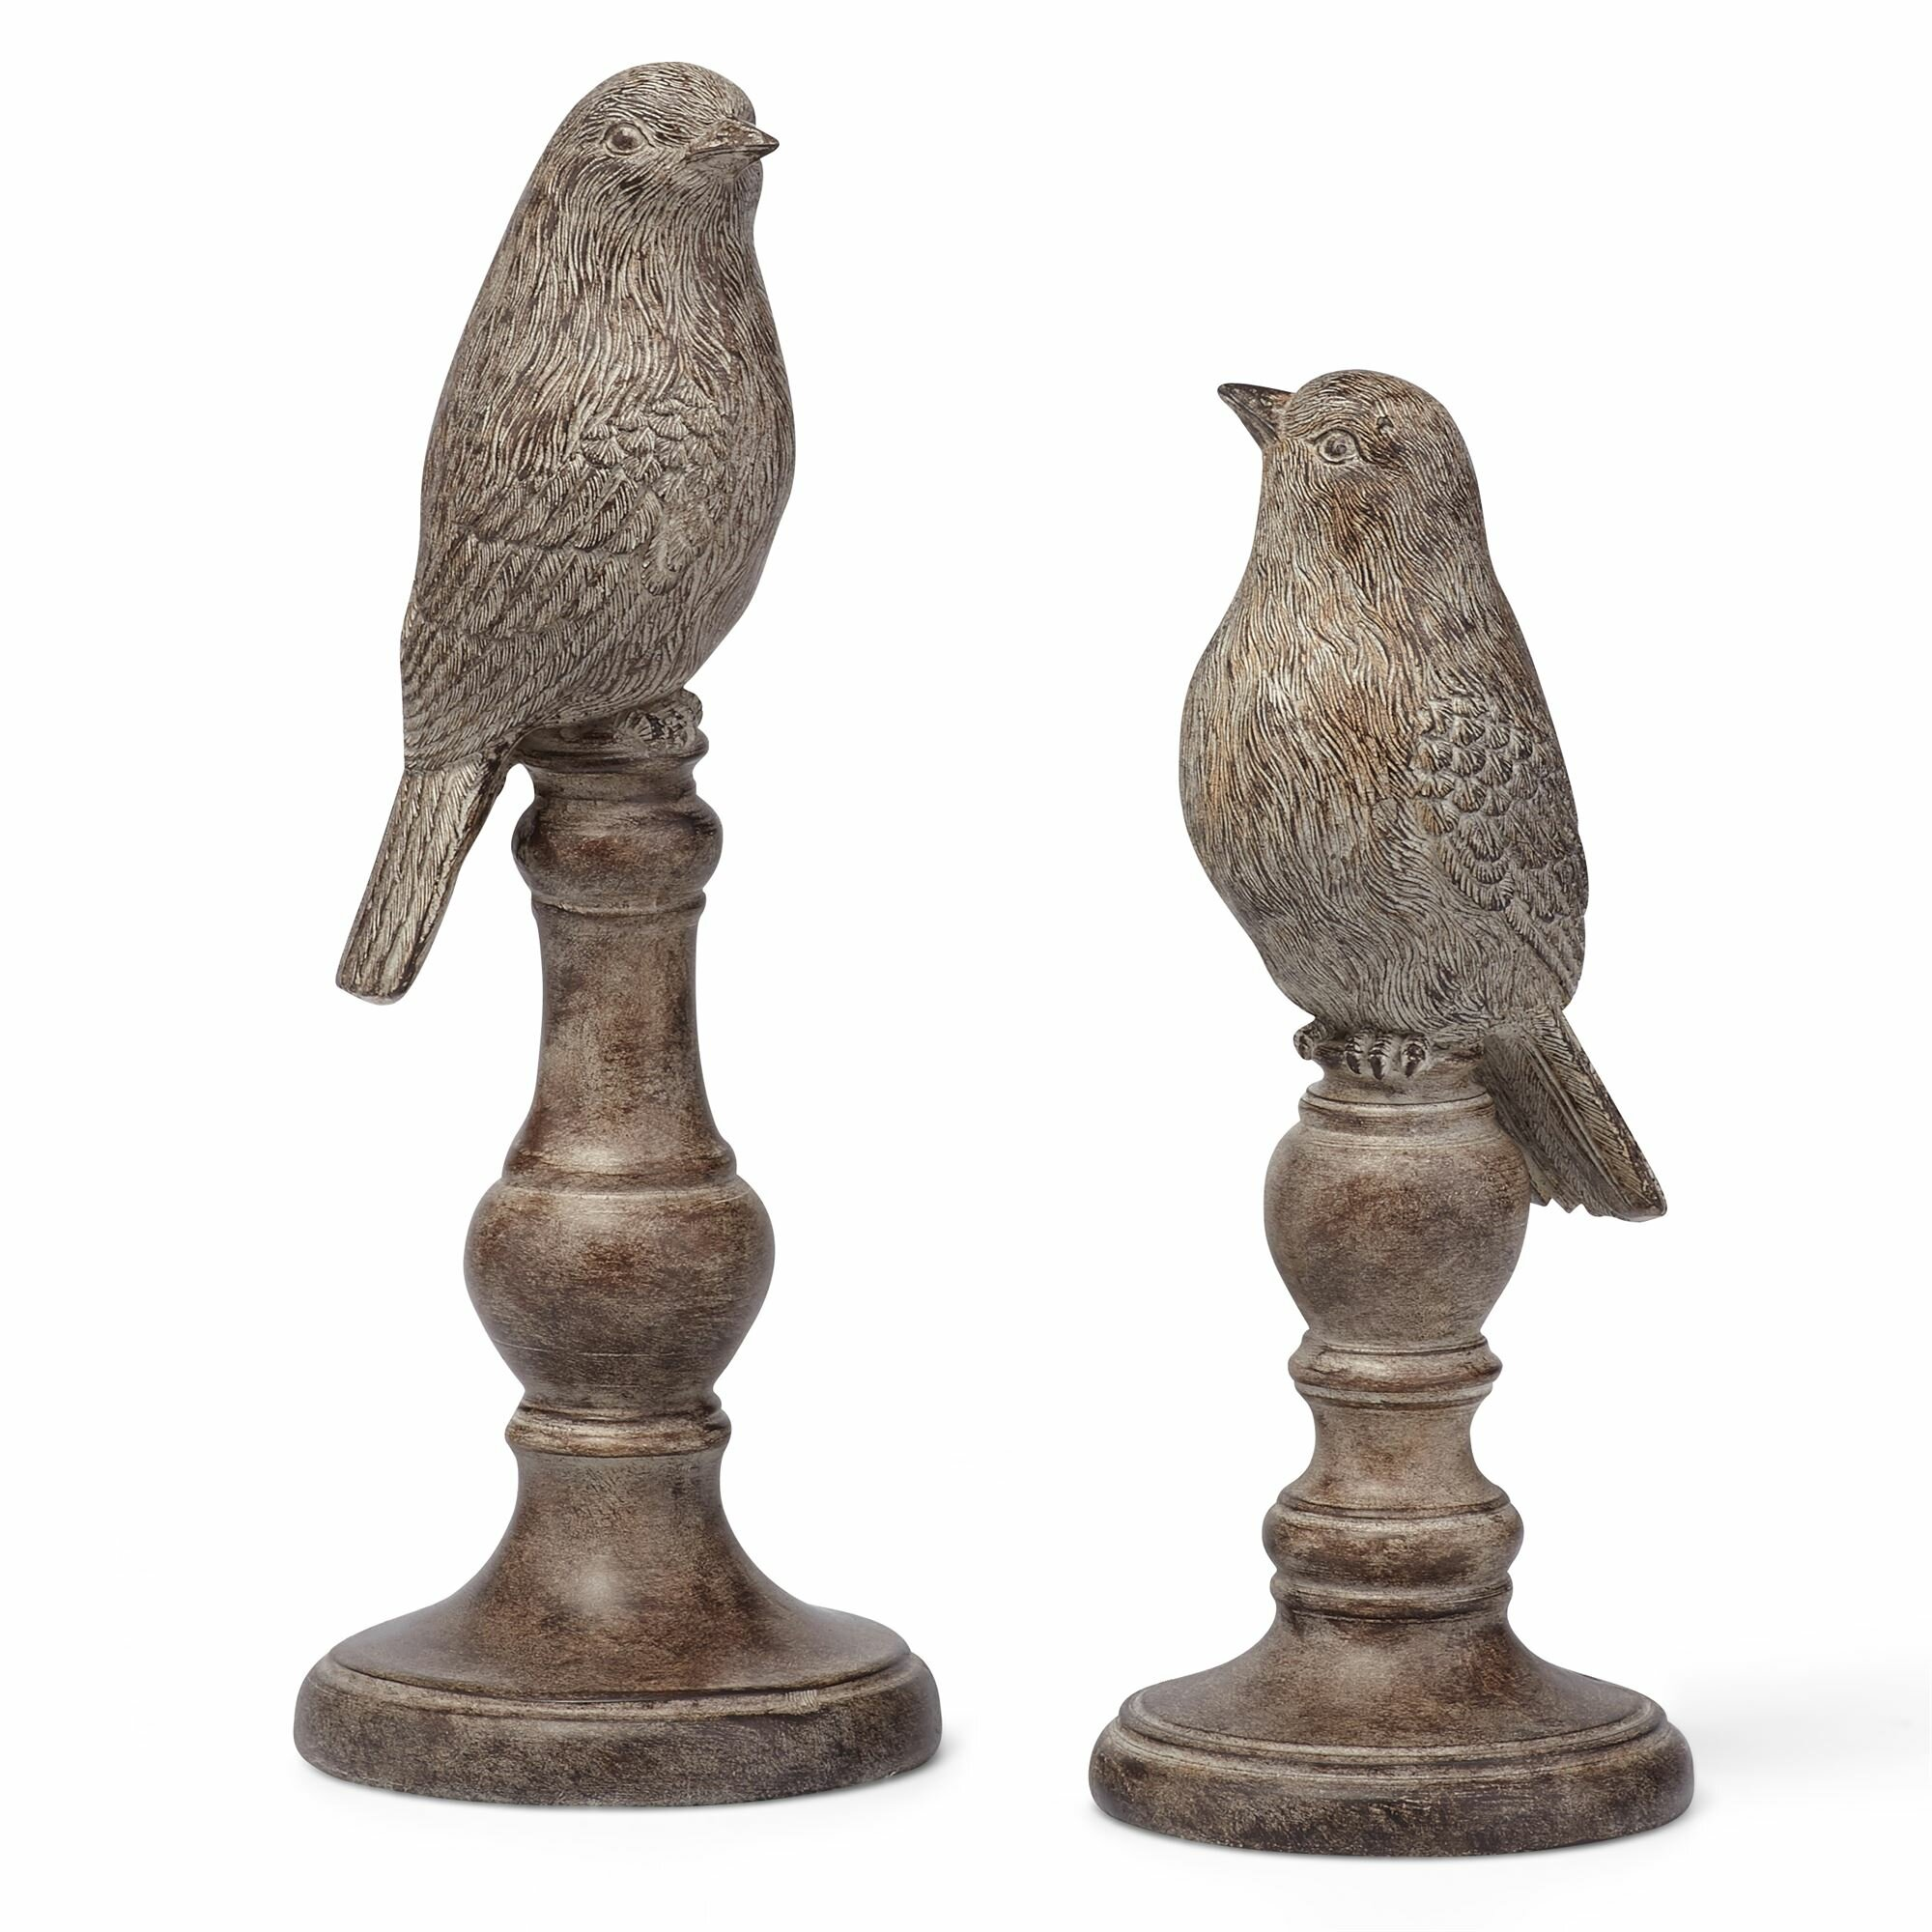 Imax 2 Piece Bird Figurine Set Reviews Wayfair